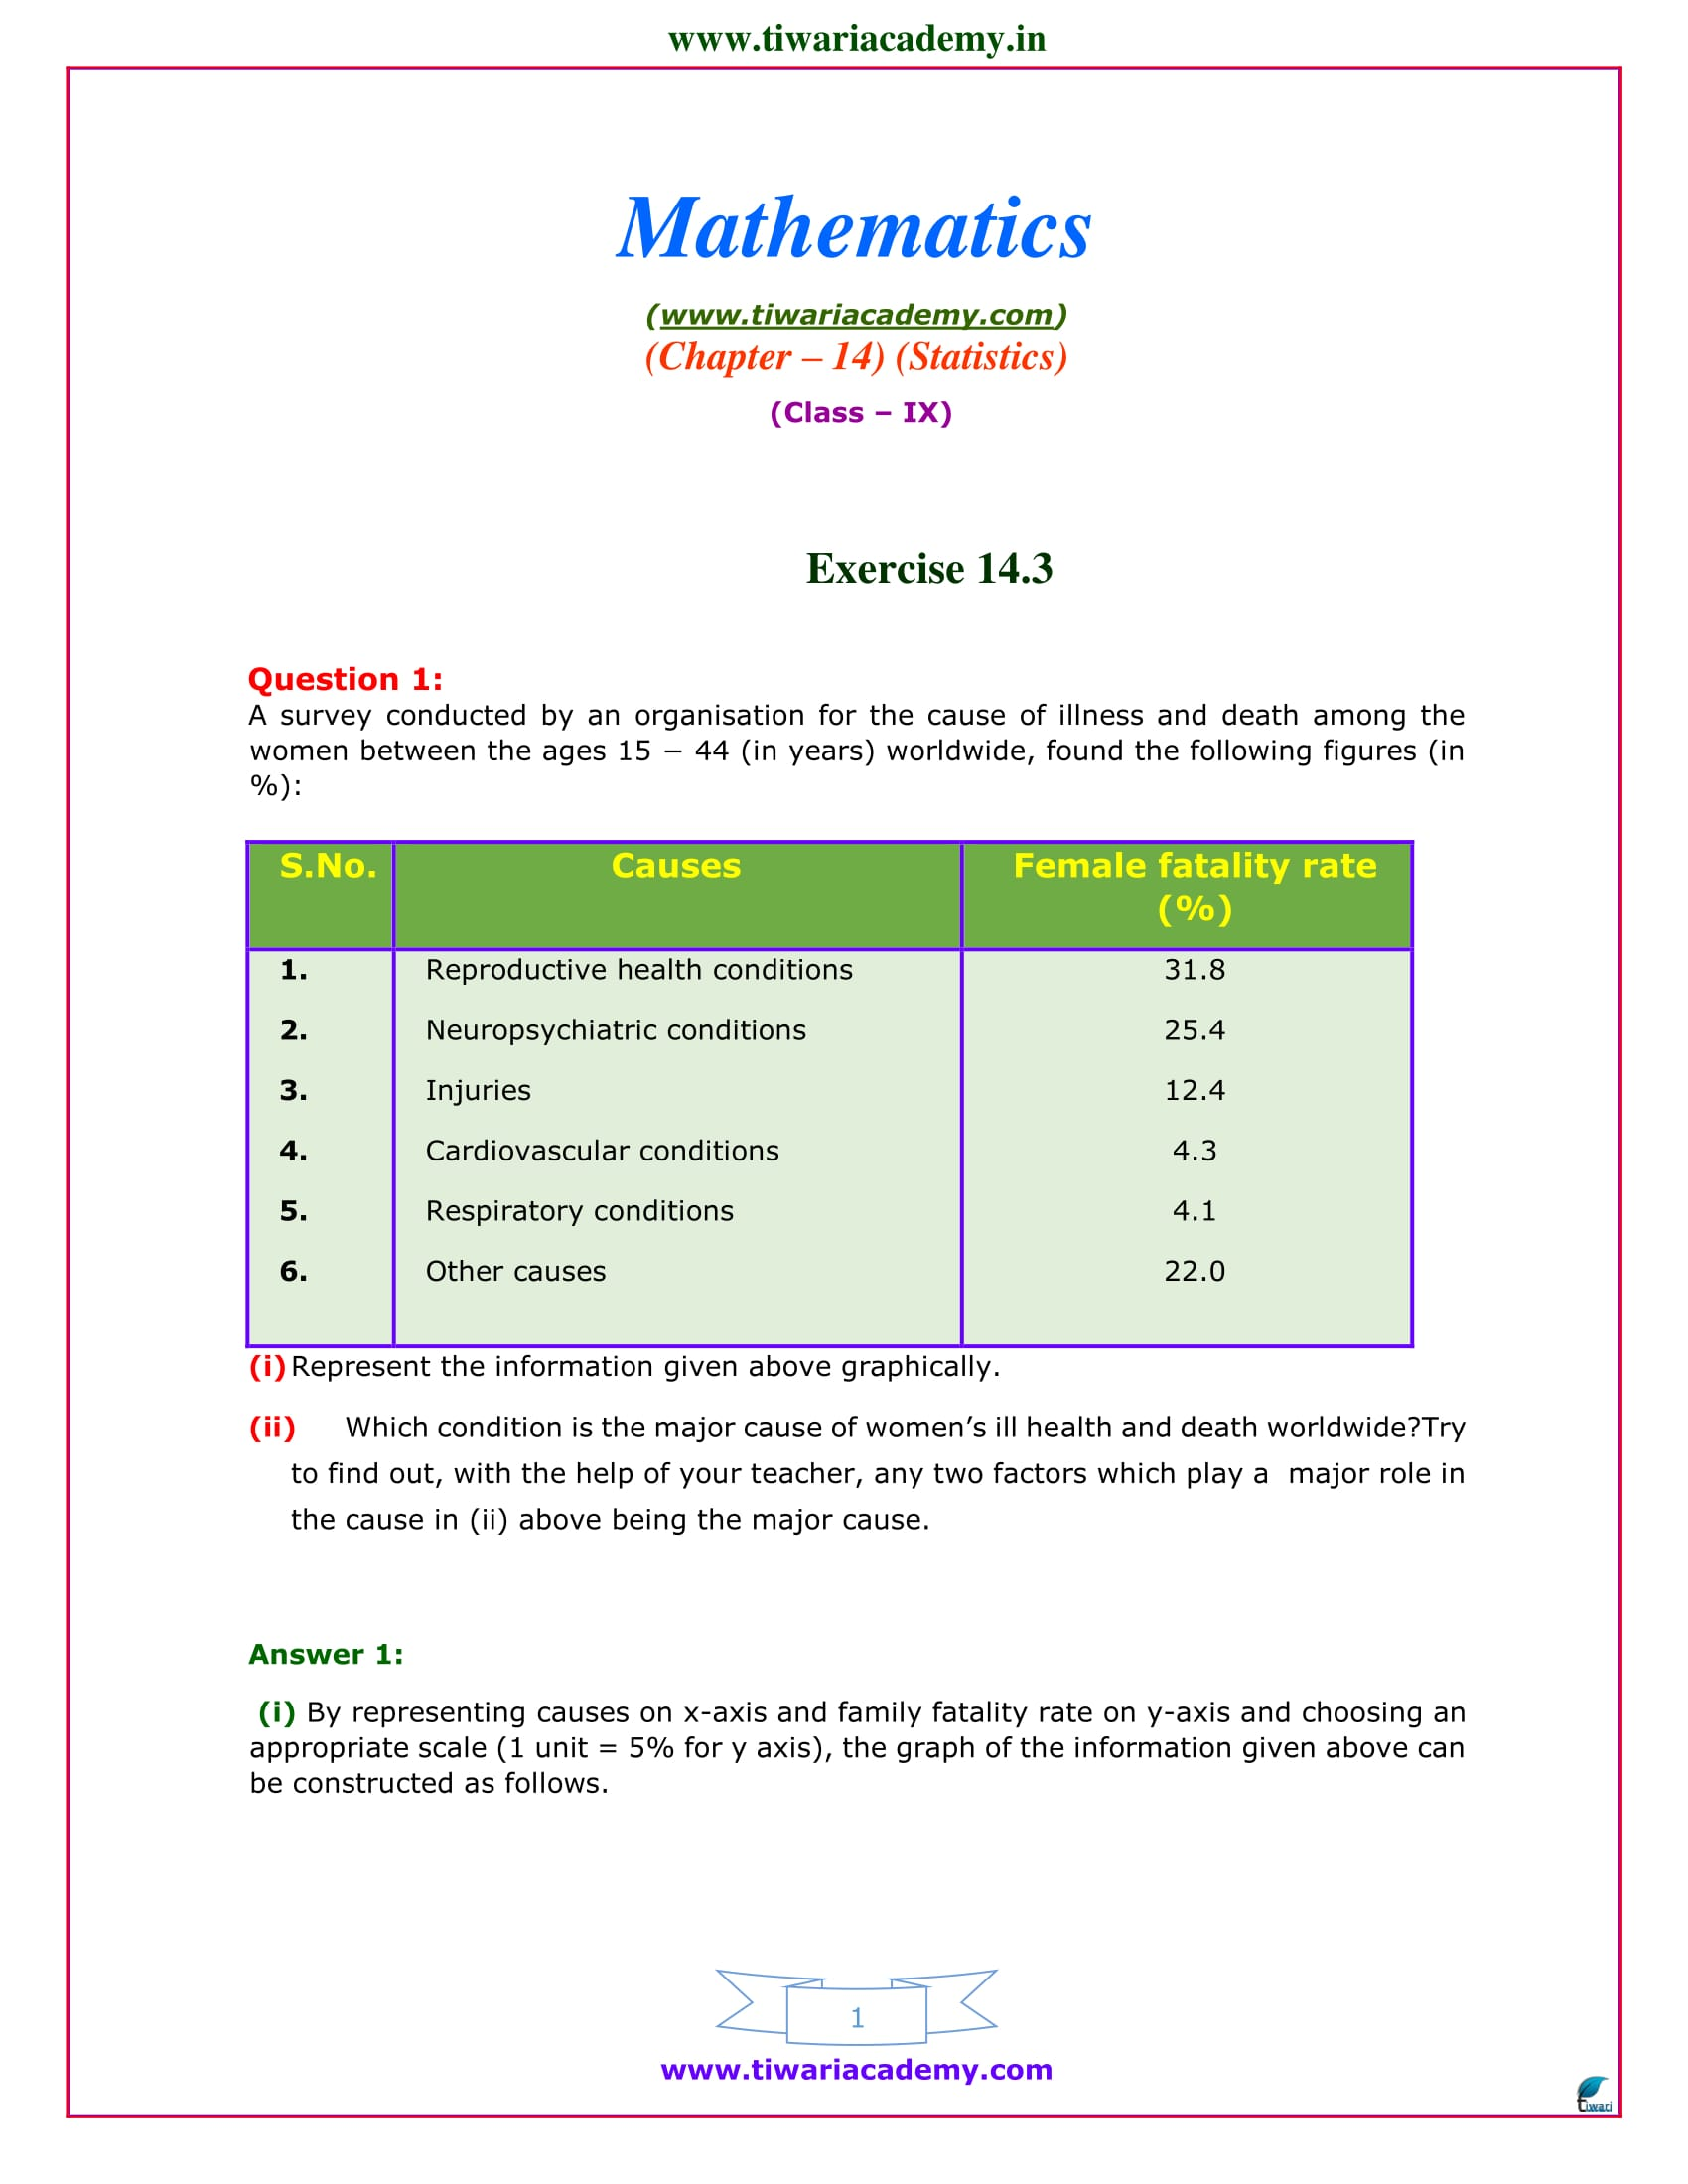 NCERT Solutions for Class 9 Maths Chapter 14 Exercise 14.3